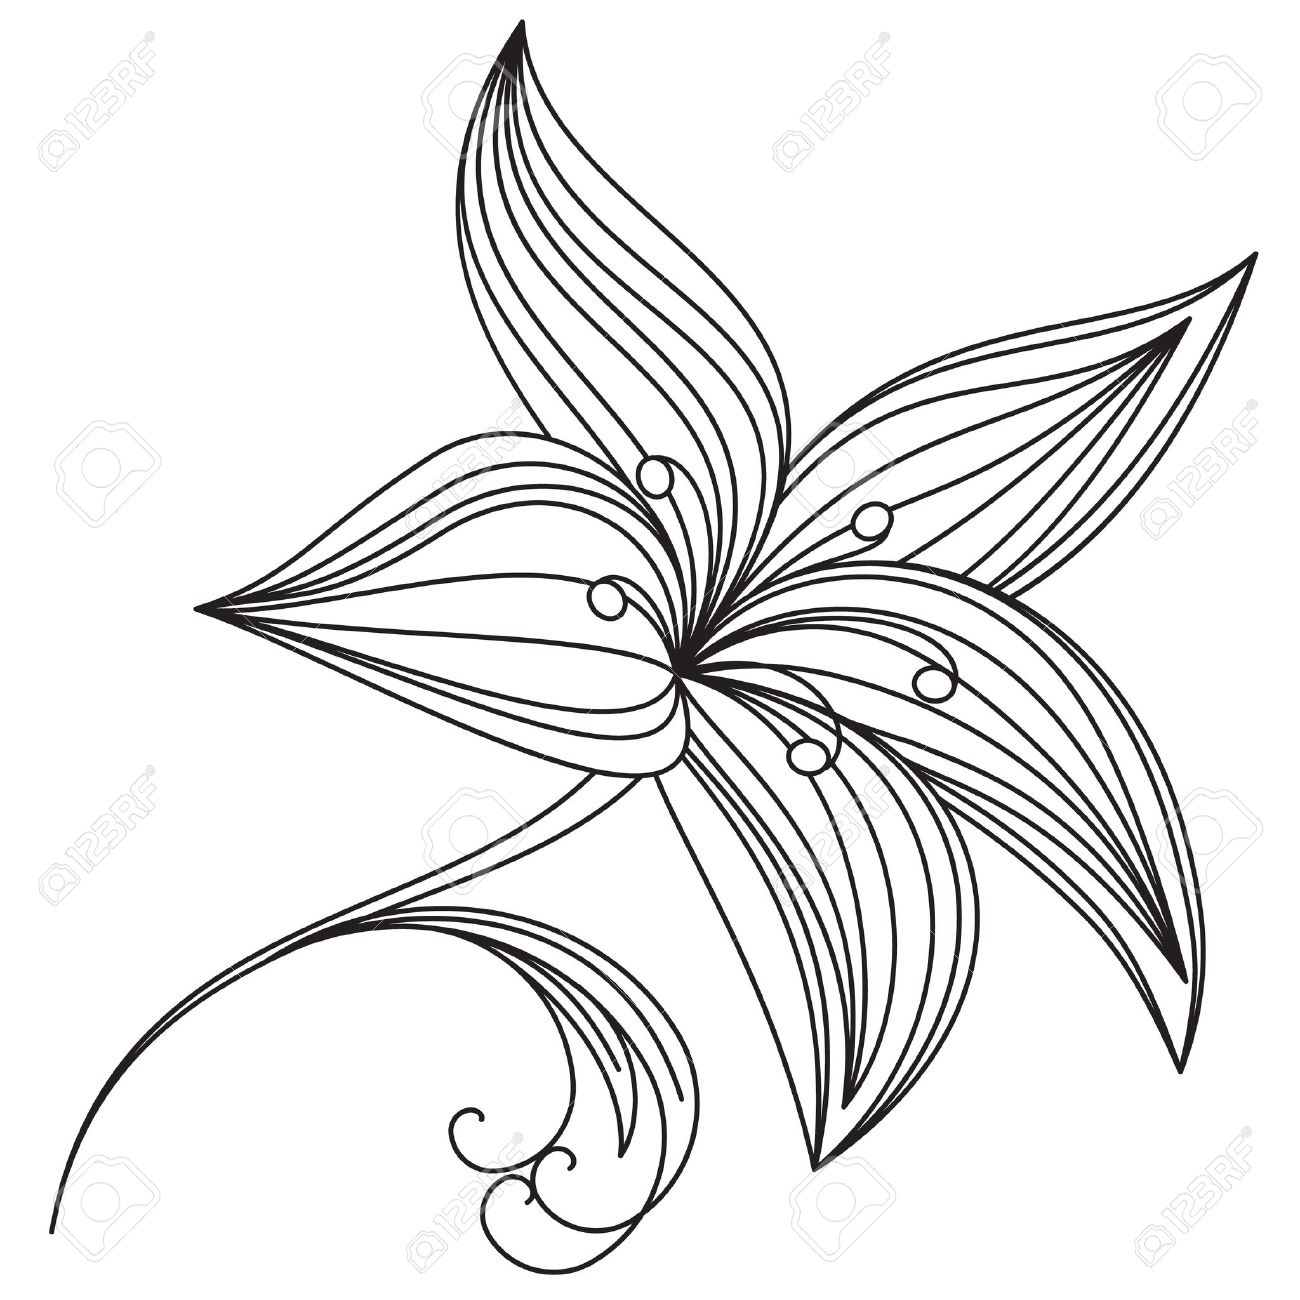 Lily Leaves Drawing Beautiful Flower of Lily